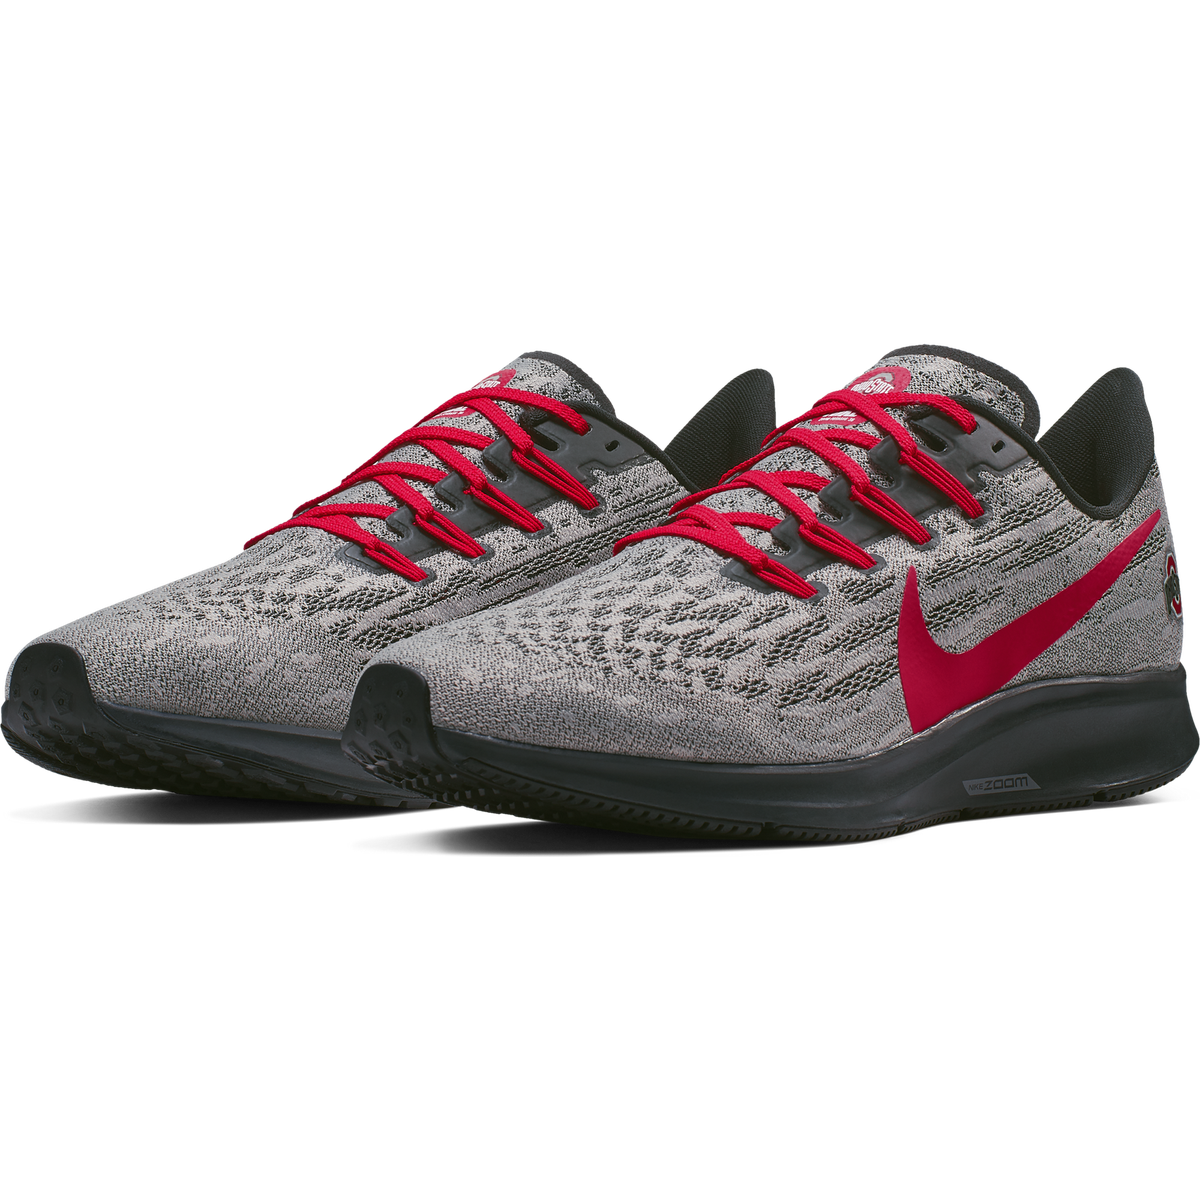 b60256a0 Nike drops the new Air Zoom Pegasus 36 Ohio State shoe collection ...